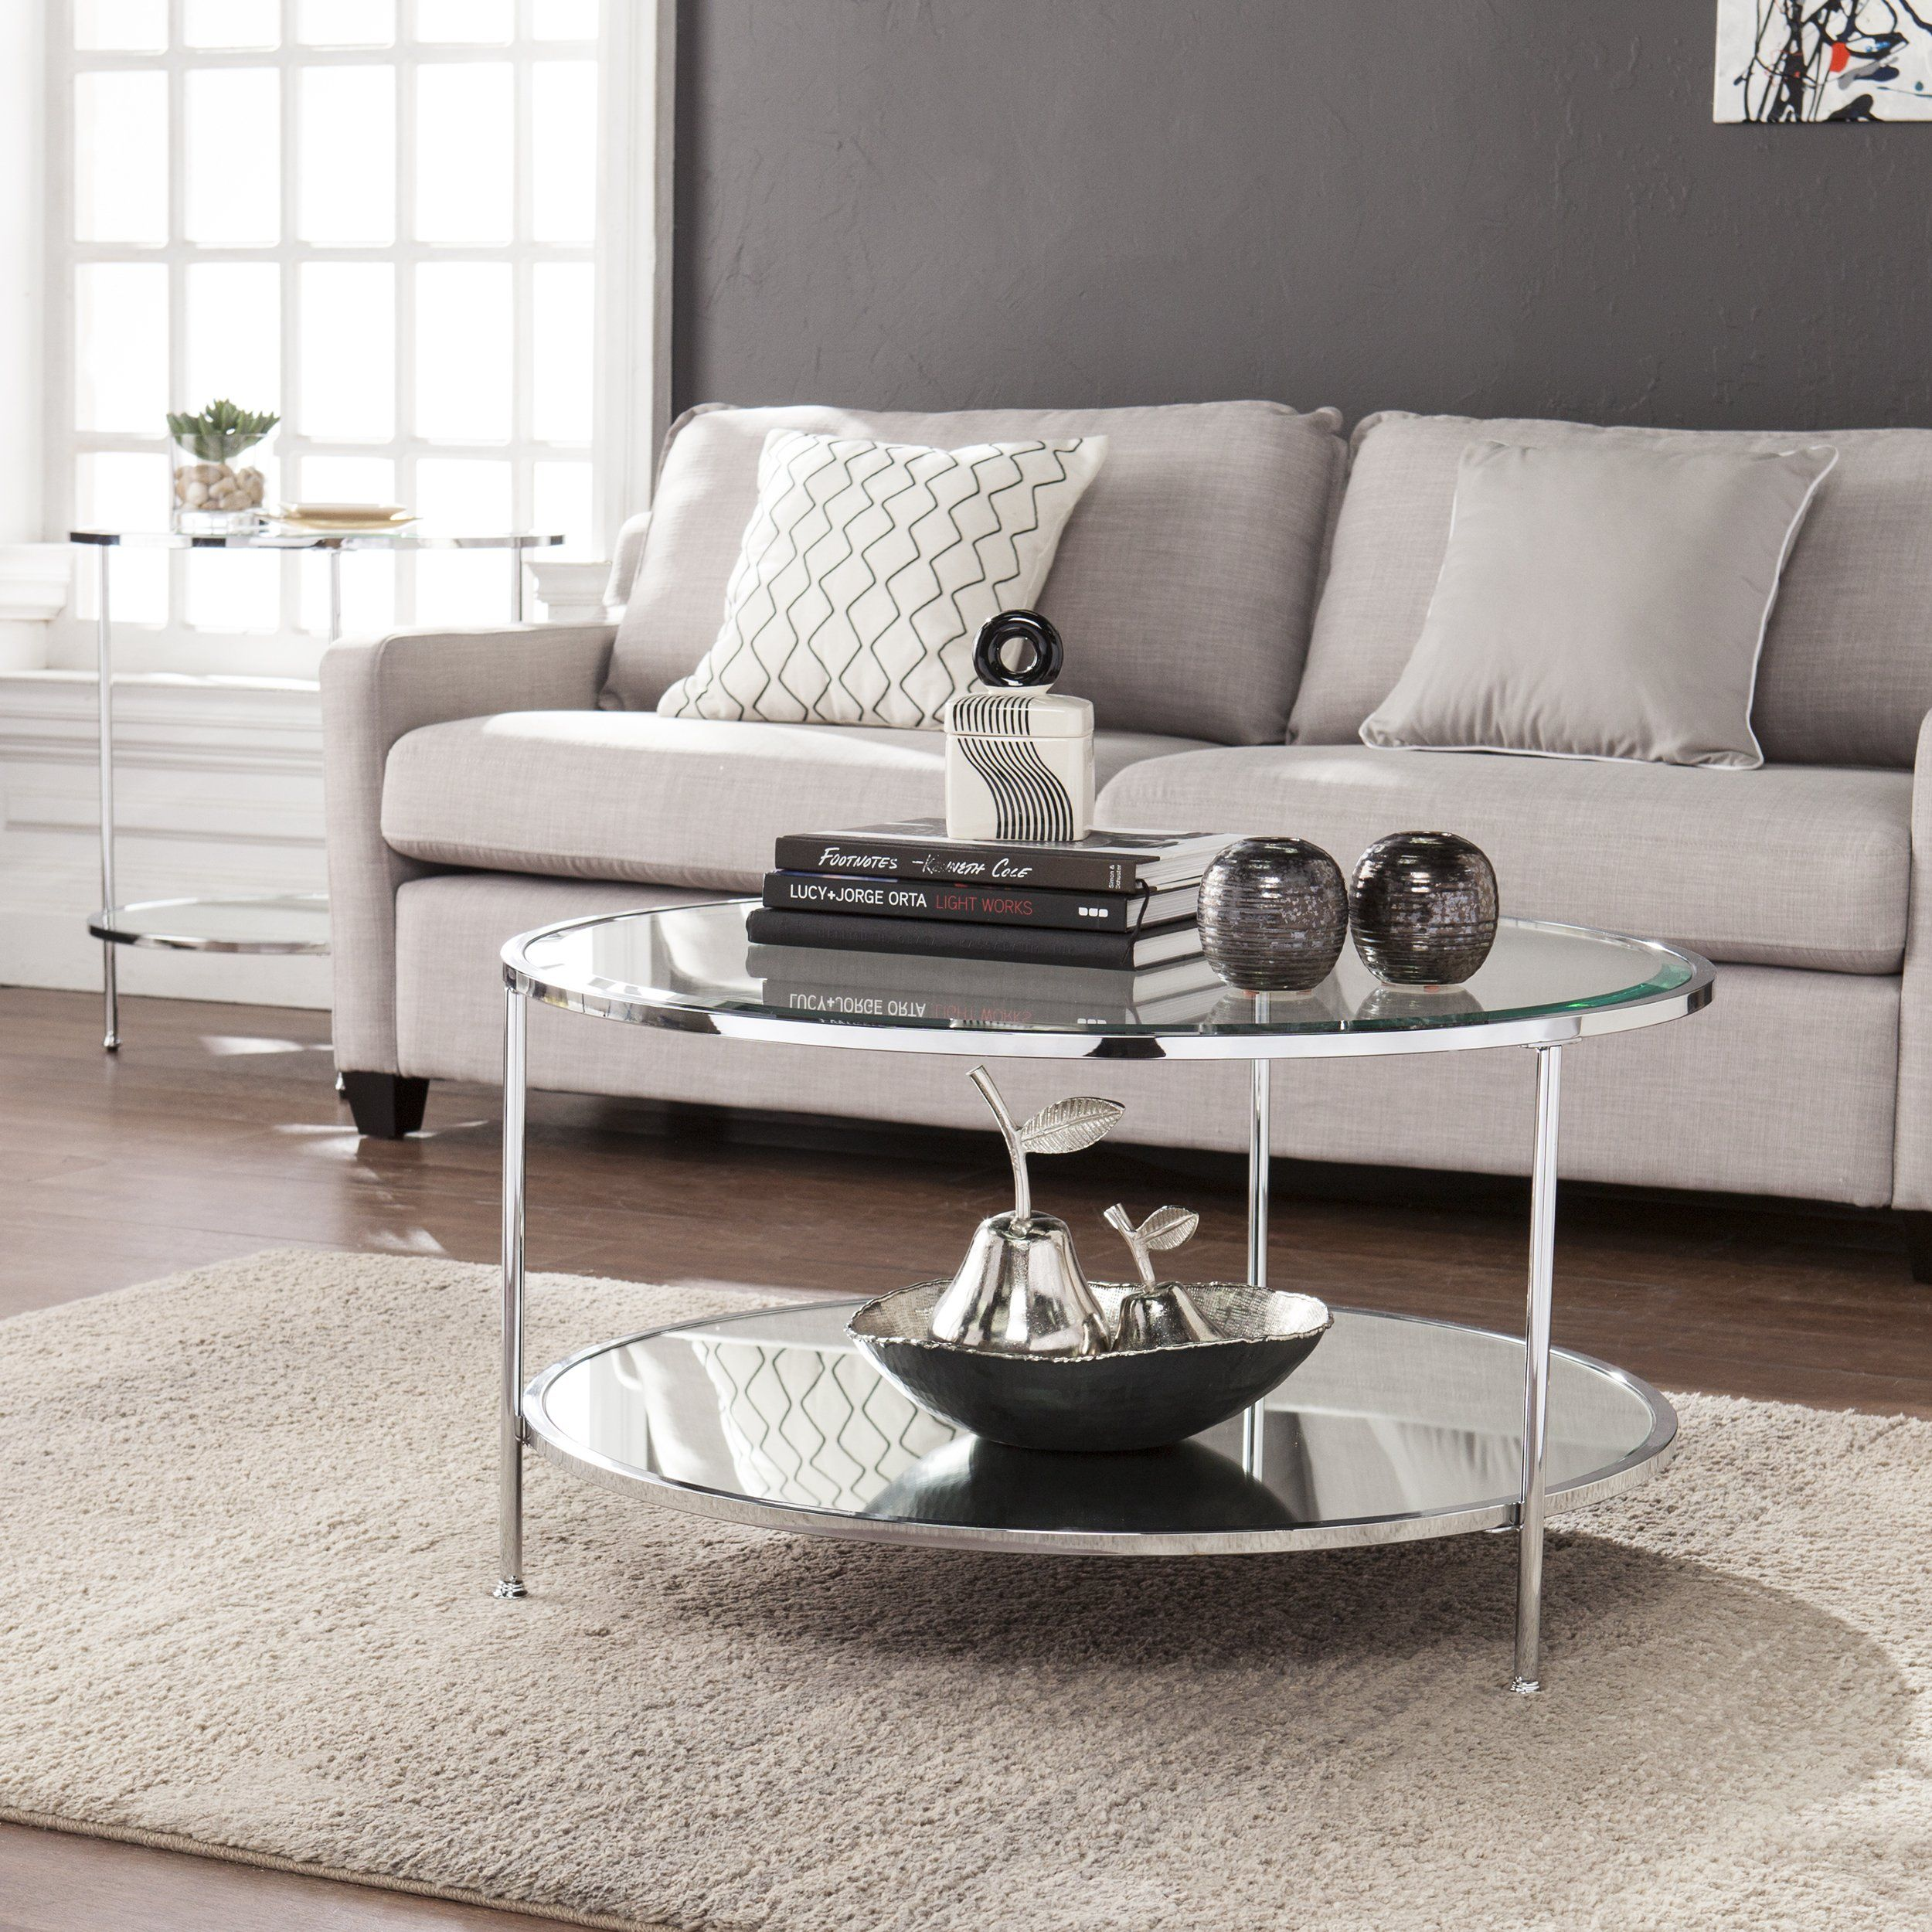 Furniture Hotspot A Round Metal And Glass Coffee Table A Chrome 33 75 W X 33 75 D X 18 25 H Coffee Table Coffee Table With Storage Round Coffee Table Sets [ 2500 x 2500 Pixel ]